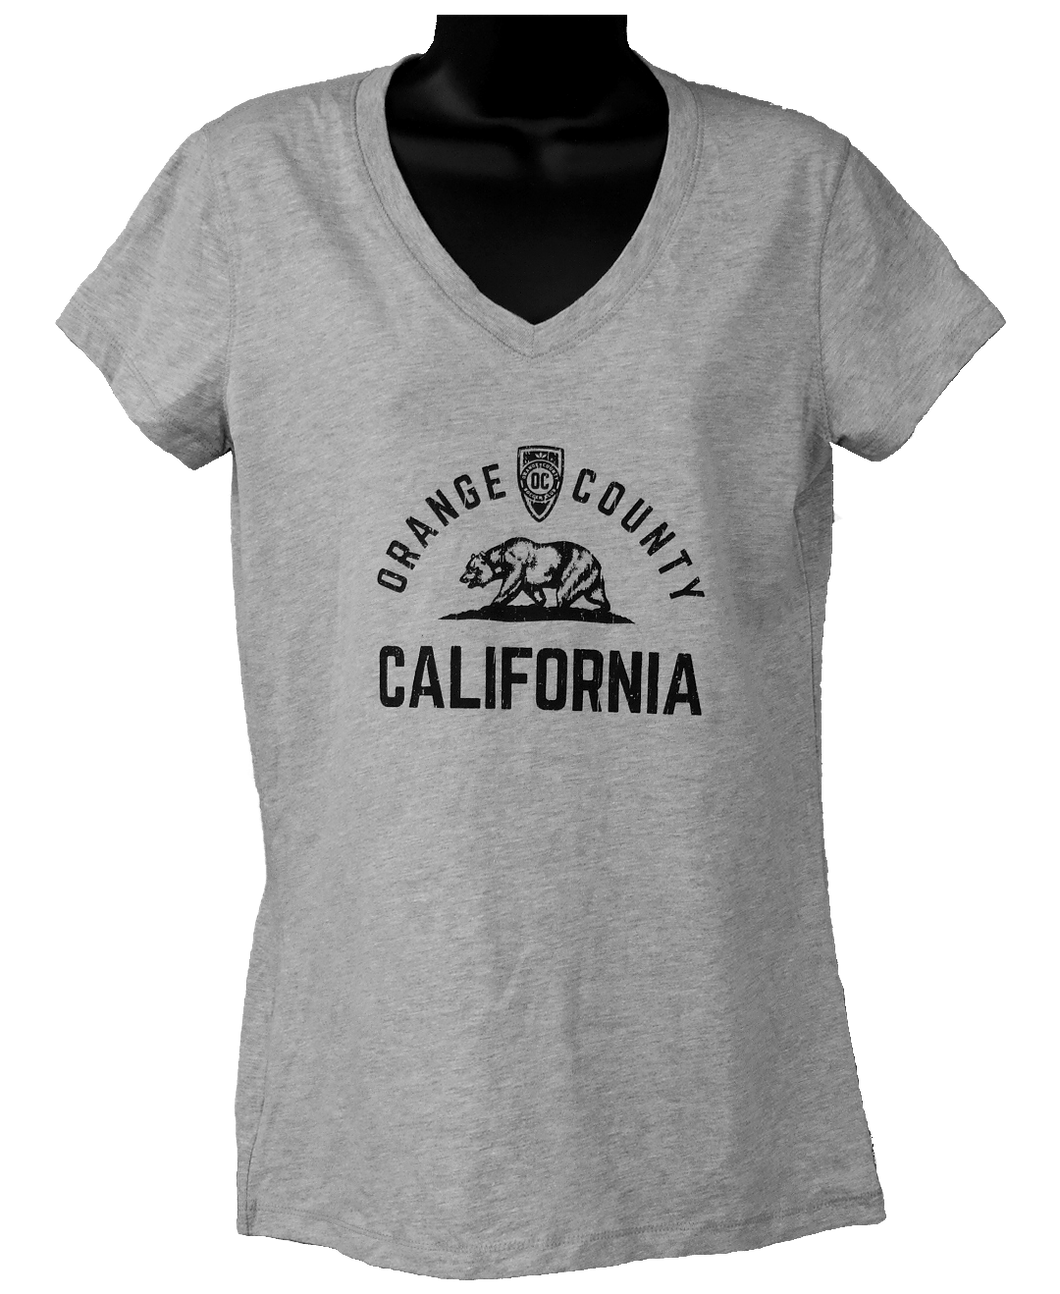 OC California Tee - Women's